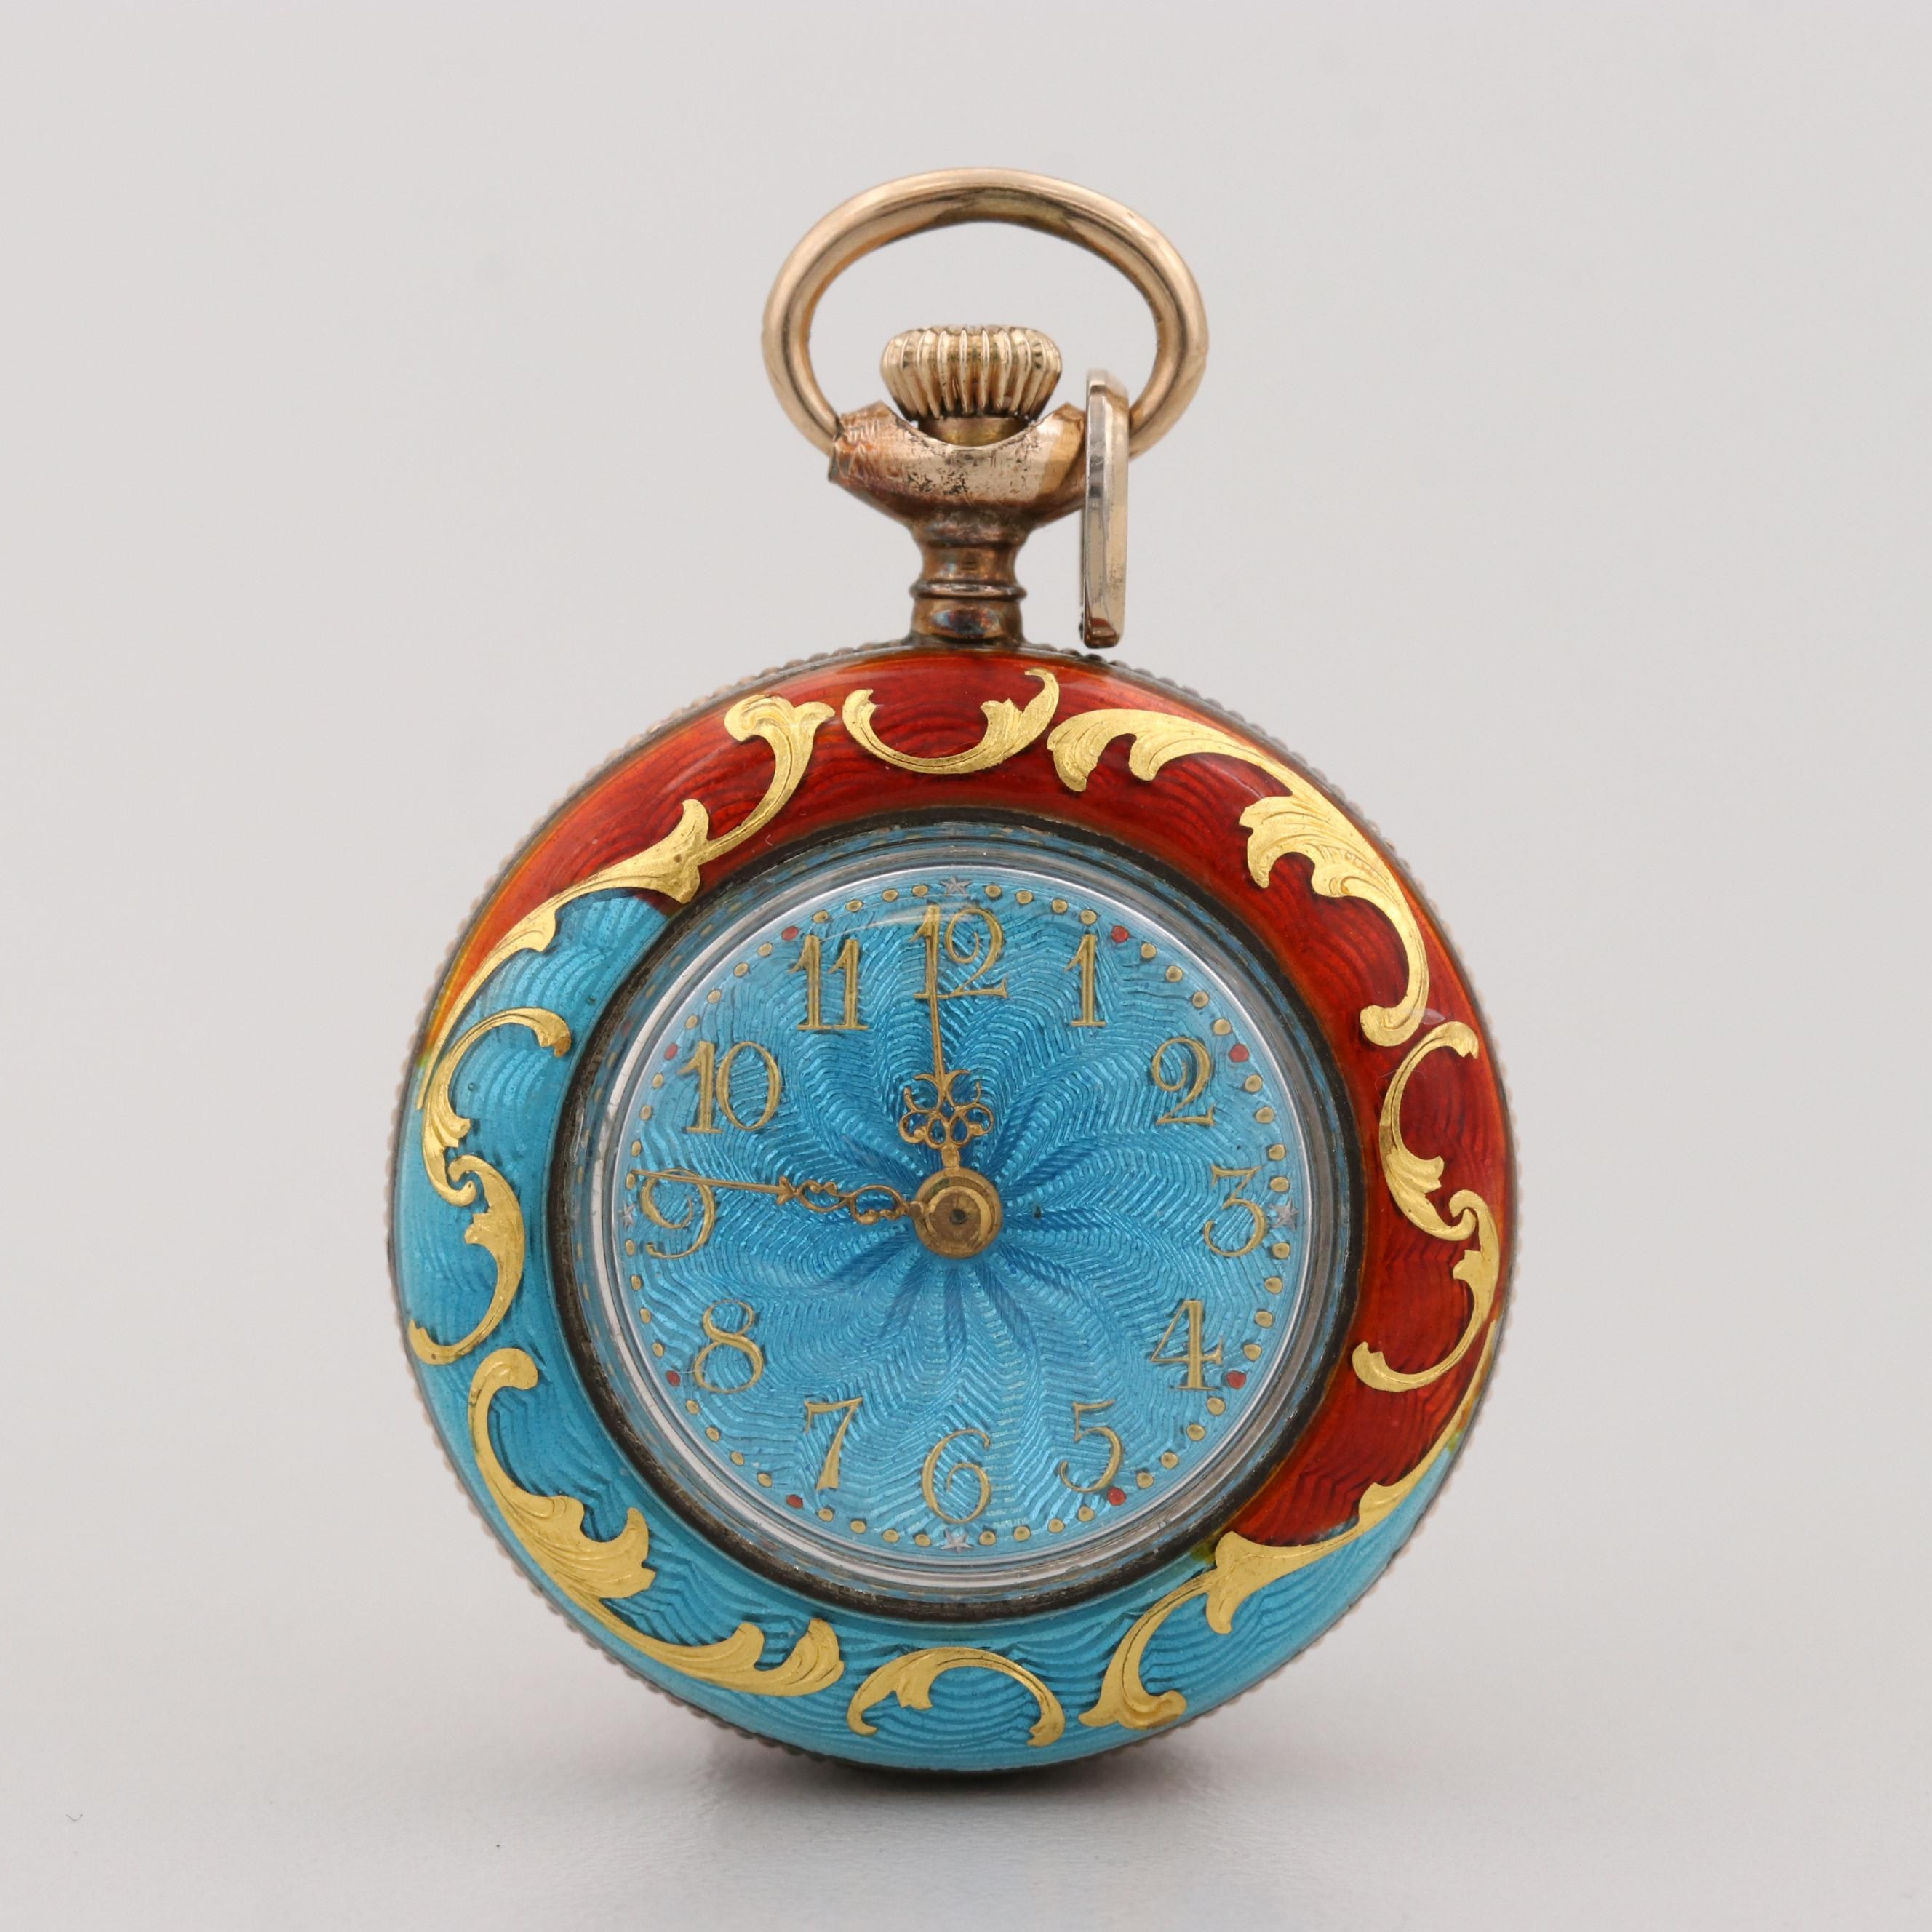 Vintage Swiss Gold Wash on Sterling Silver and Enamel Open Face Pocket Watch